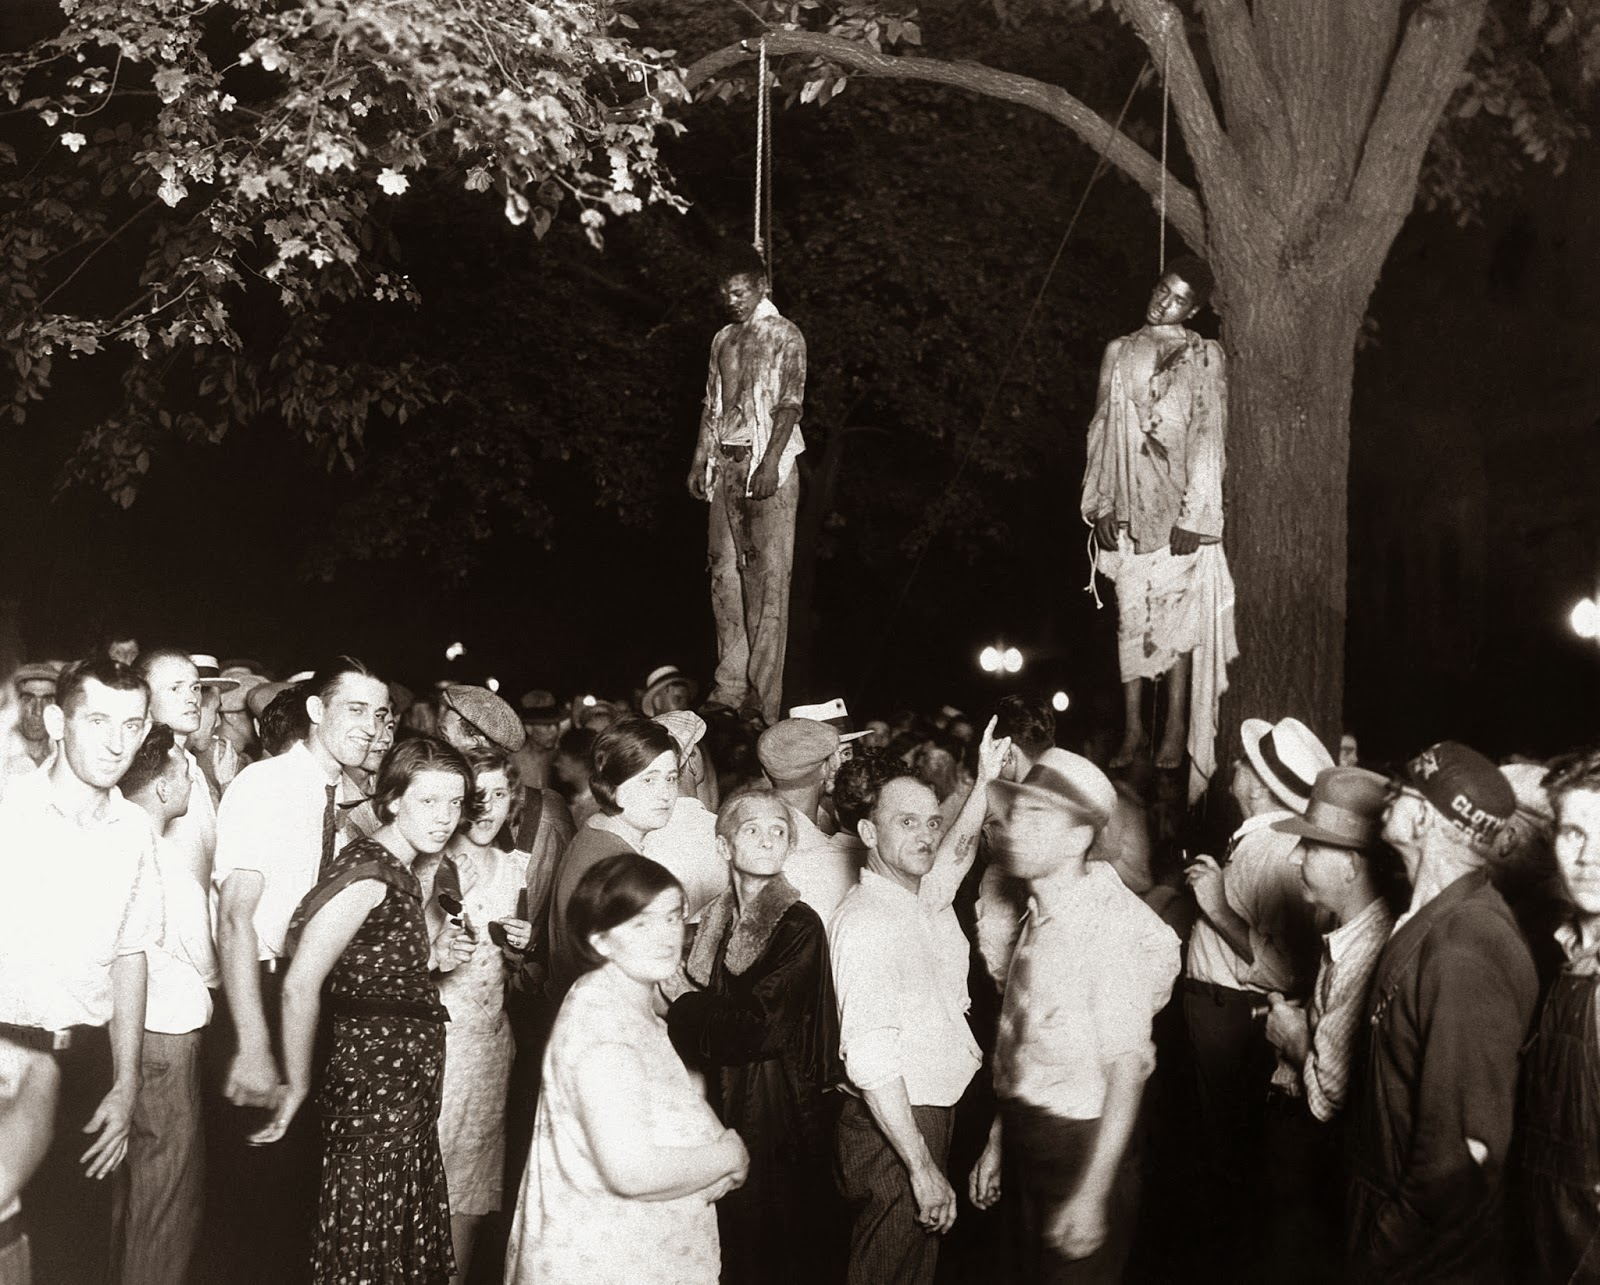 Lynching of Thomas Shipp and Abram Smith, 1930